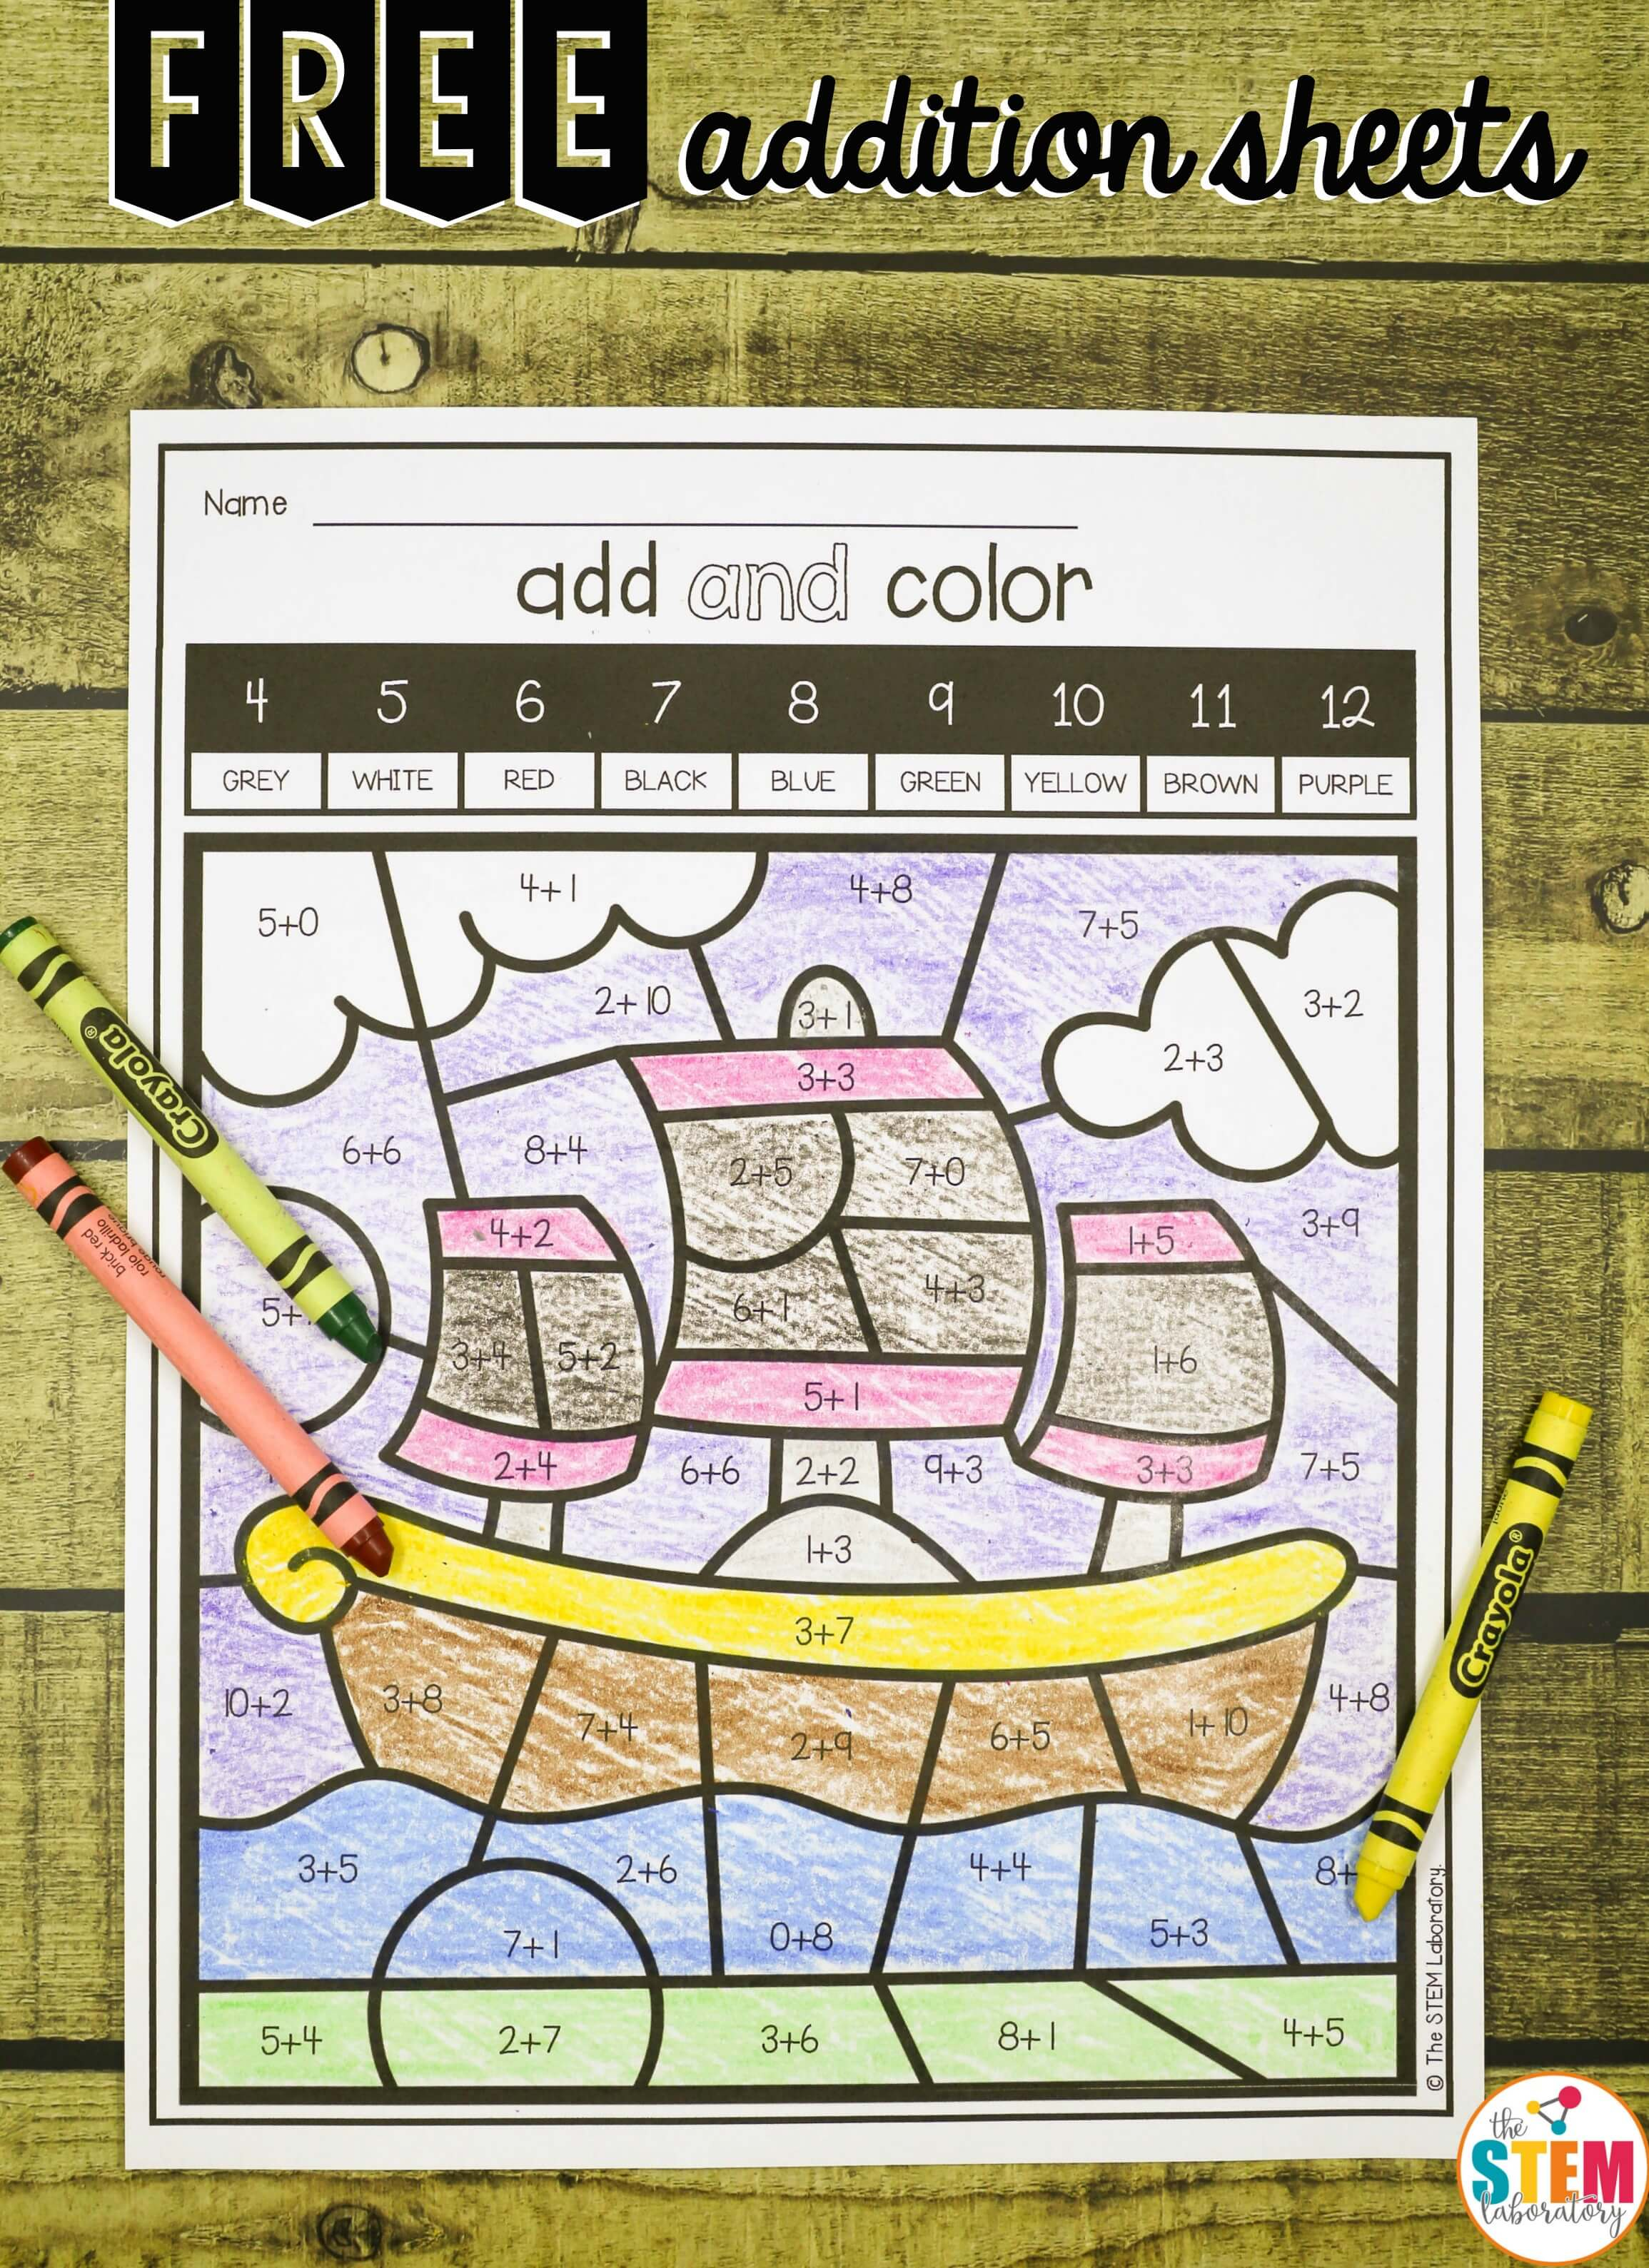 Fun Add And Color Addition Sheets